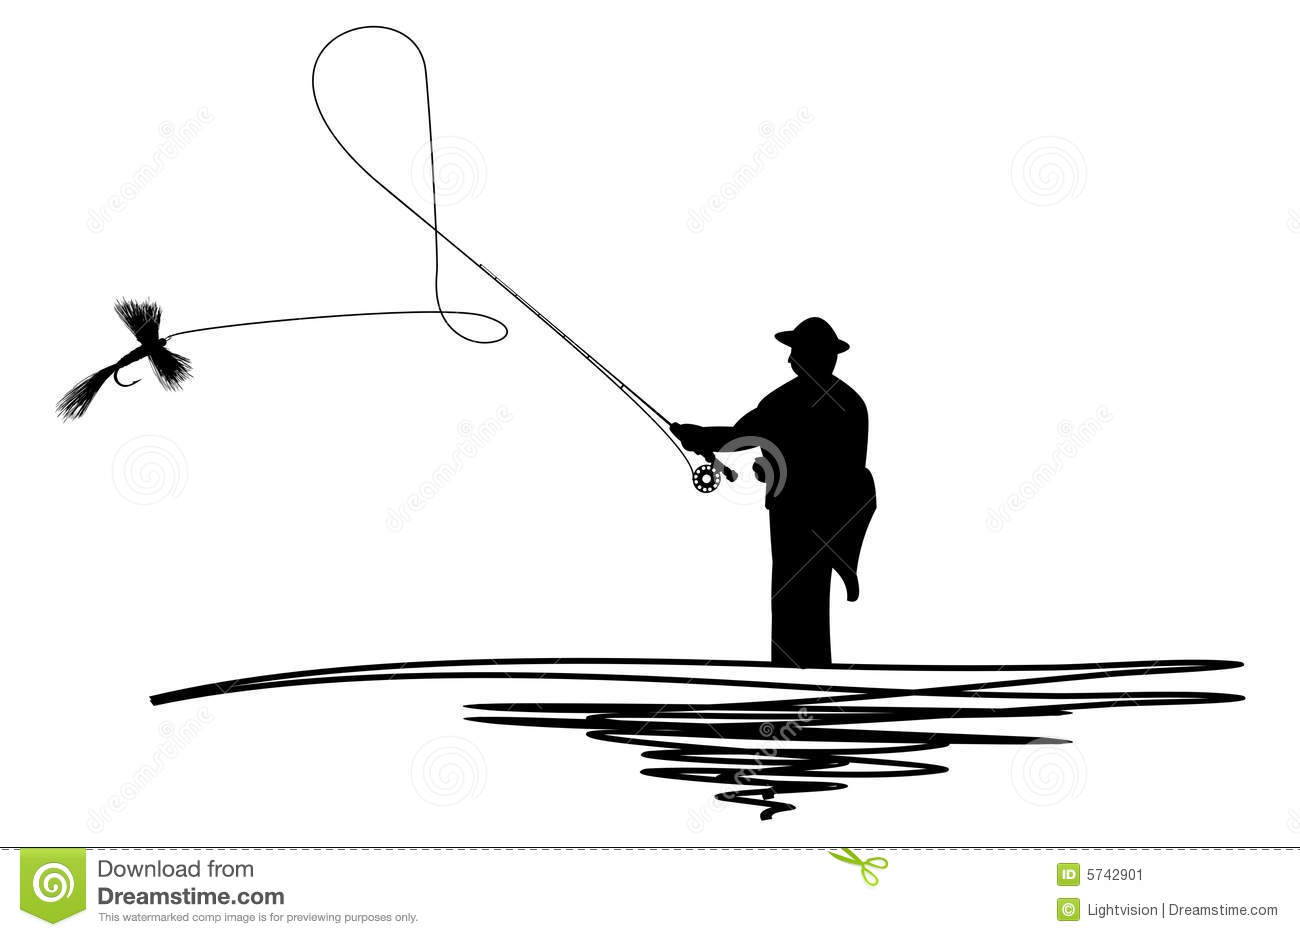 Cartoon illustration of a silhouetted man casting a fishing fly.